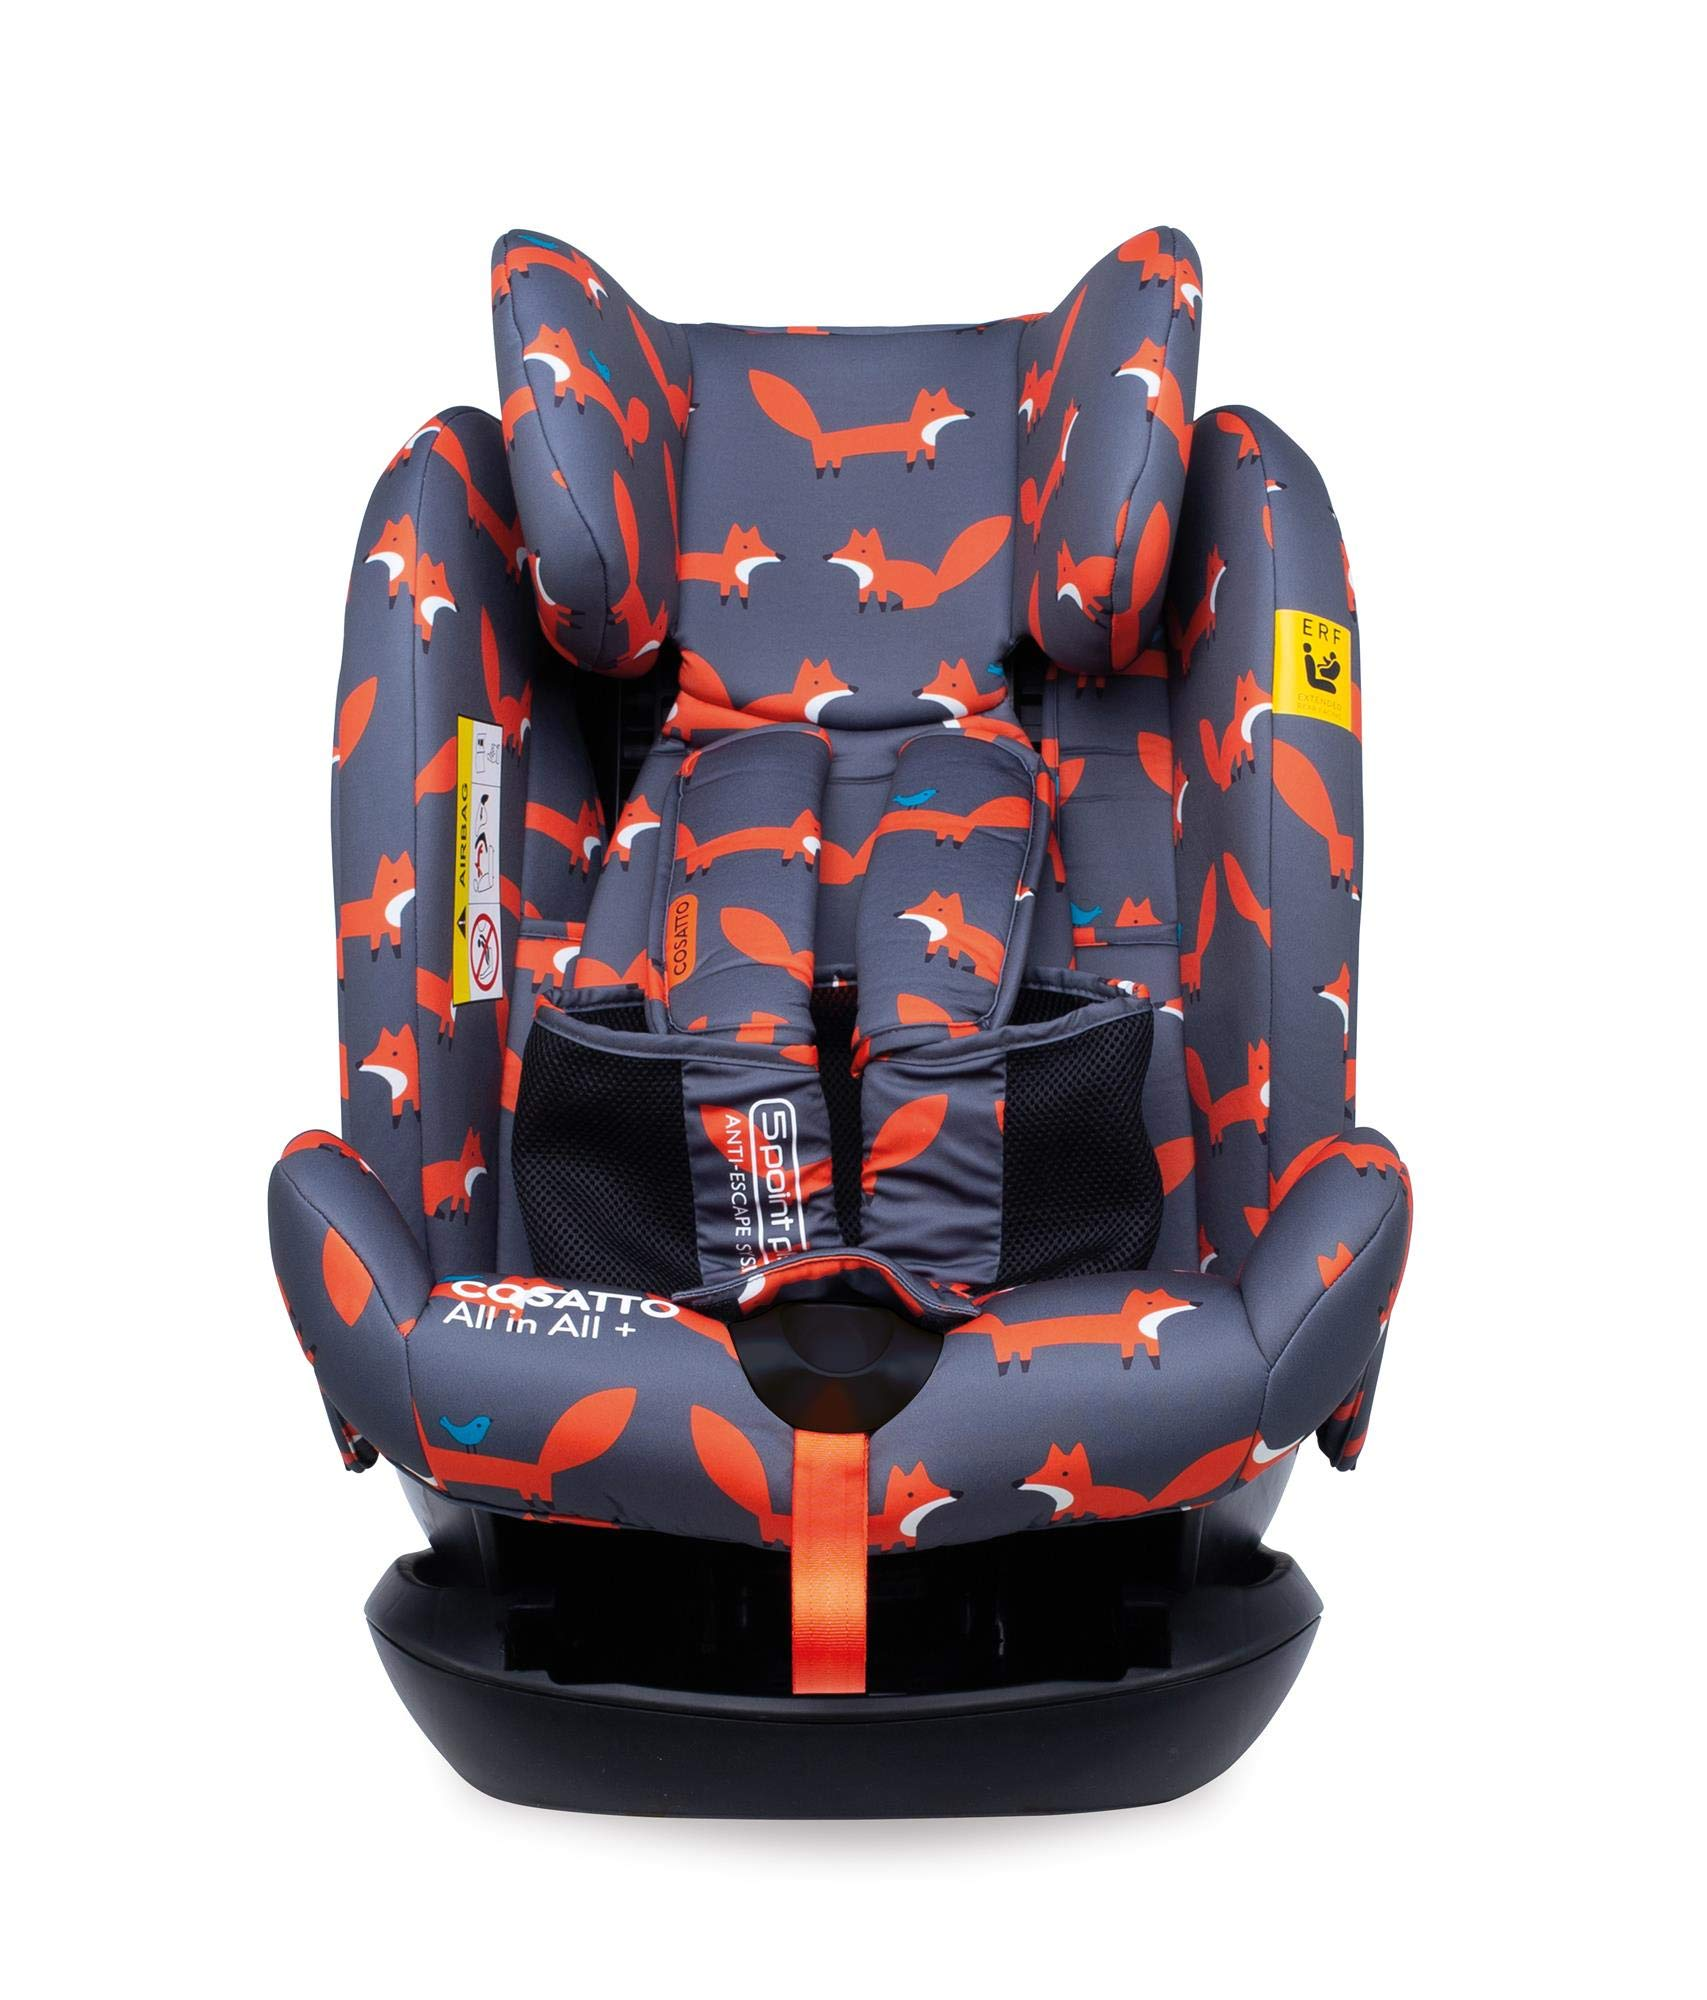 Cosatto CT4241 All in All + Group 0+123 Car Seat Mister Fox 8.9 kg Cosatto Extended rear facing Suitable for all stages Extra security 8